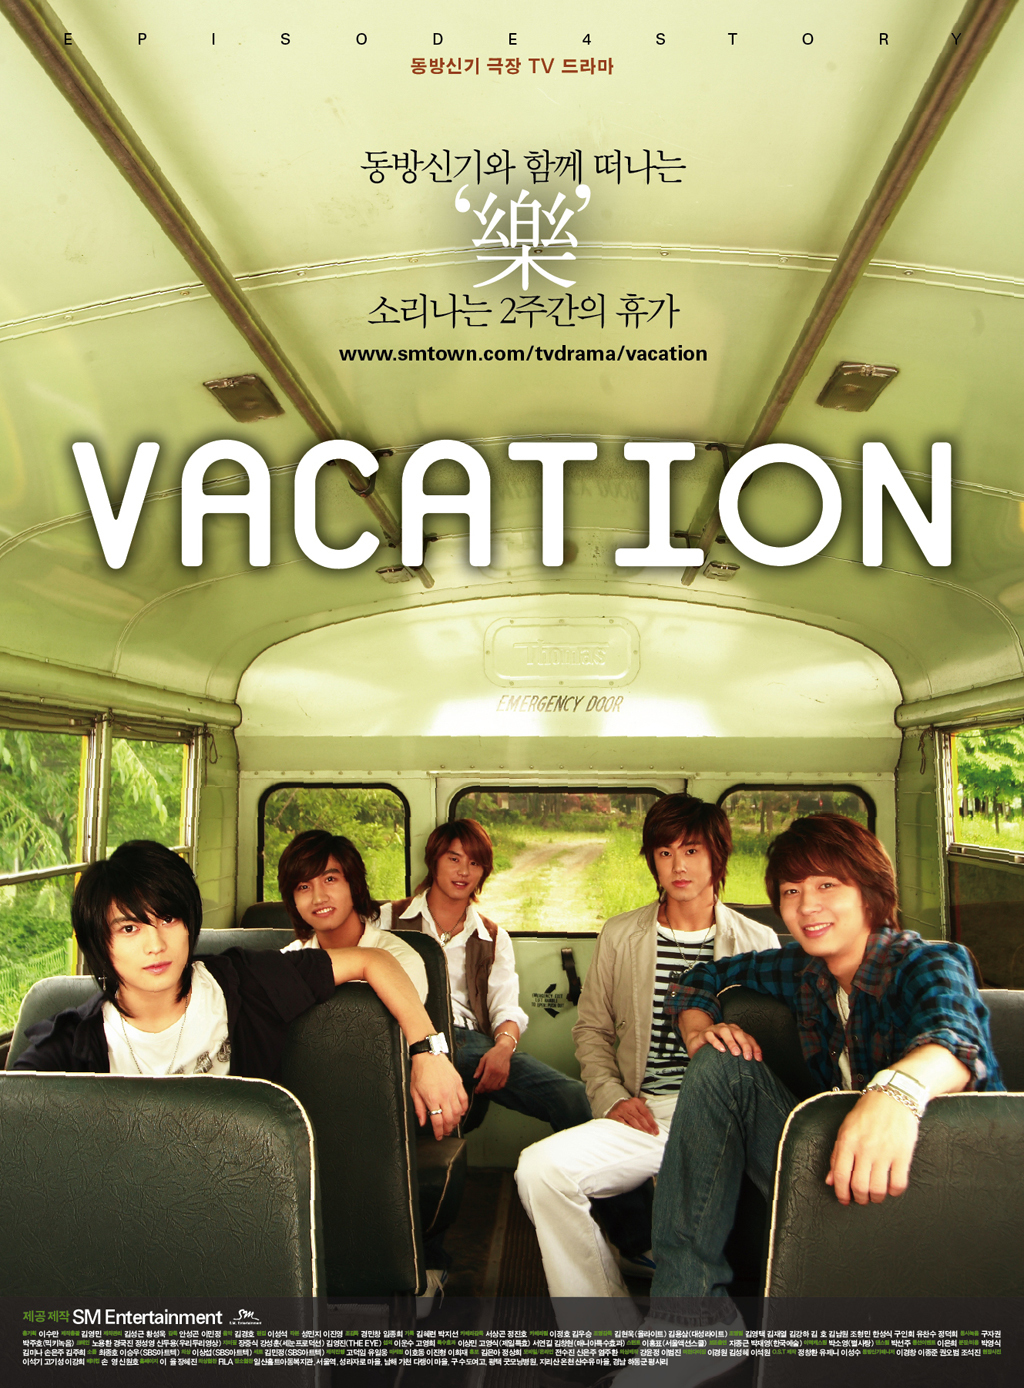 tvxq_vacation_movie_poster_01.jpg